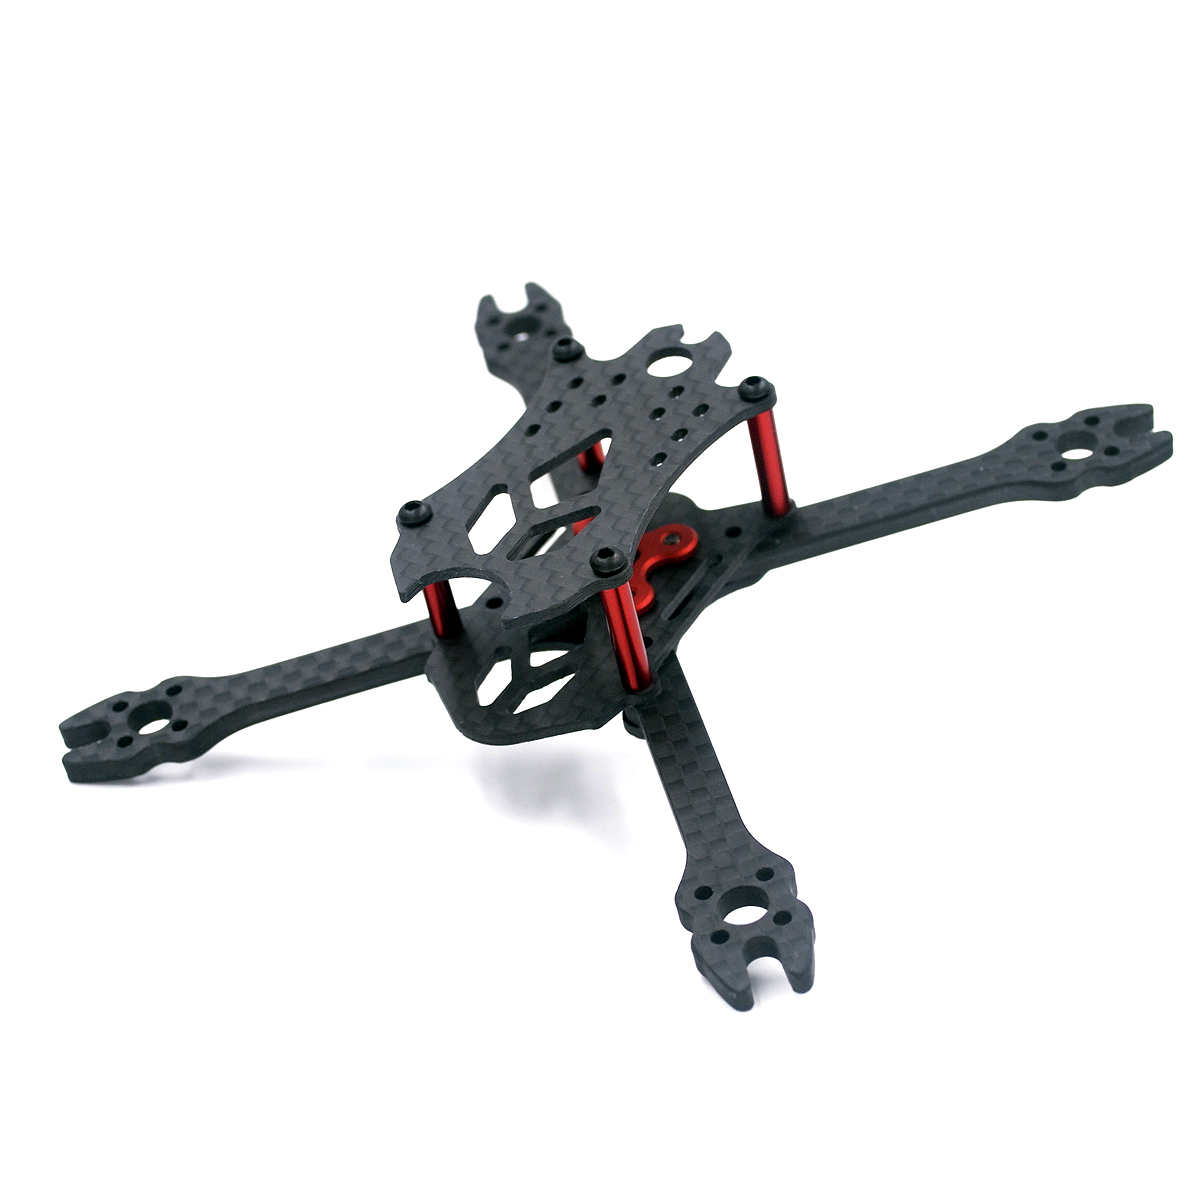 VX110 110mm 2.5inch Wheelbase 3mm Arm Micro Indoor Fpv Racing Frame Support 1104 <font><b>1106</b></font> <font><b>Motor</b></font> 2535 2435 2030 Propeller image